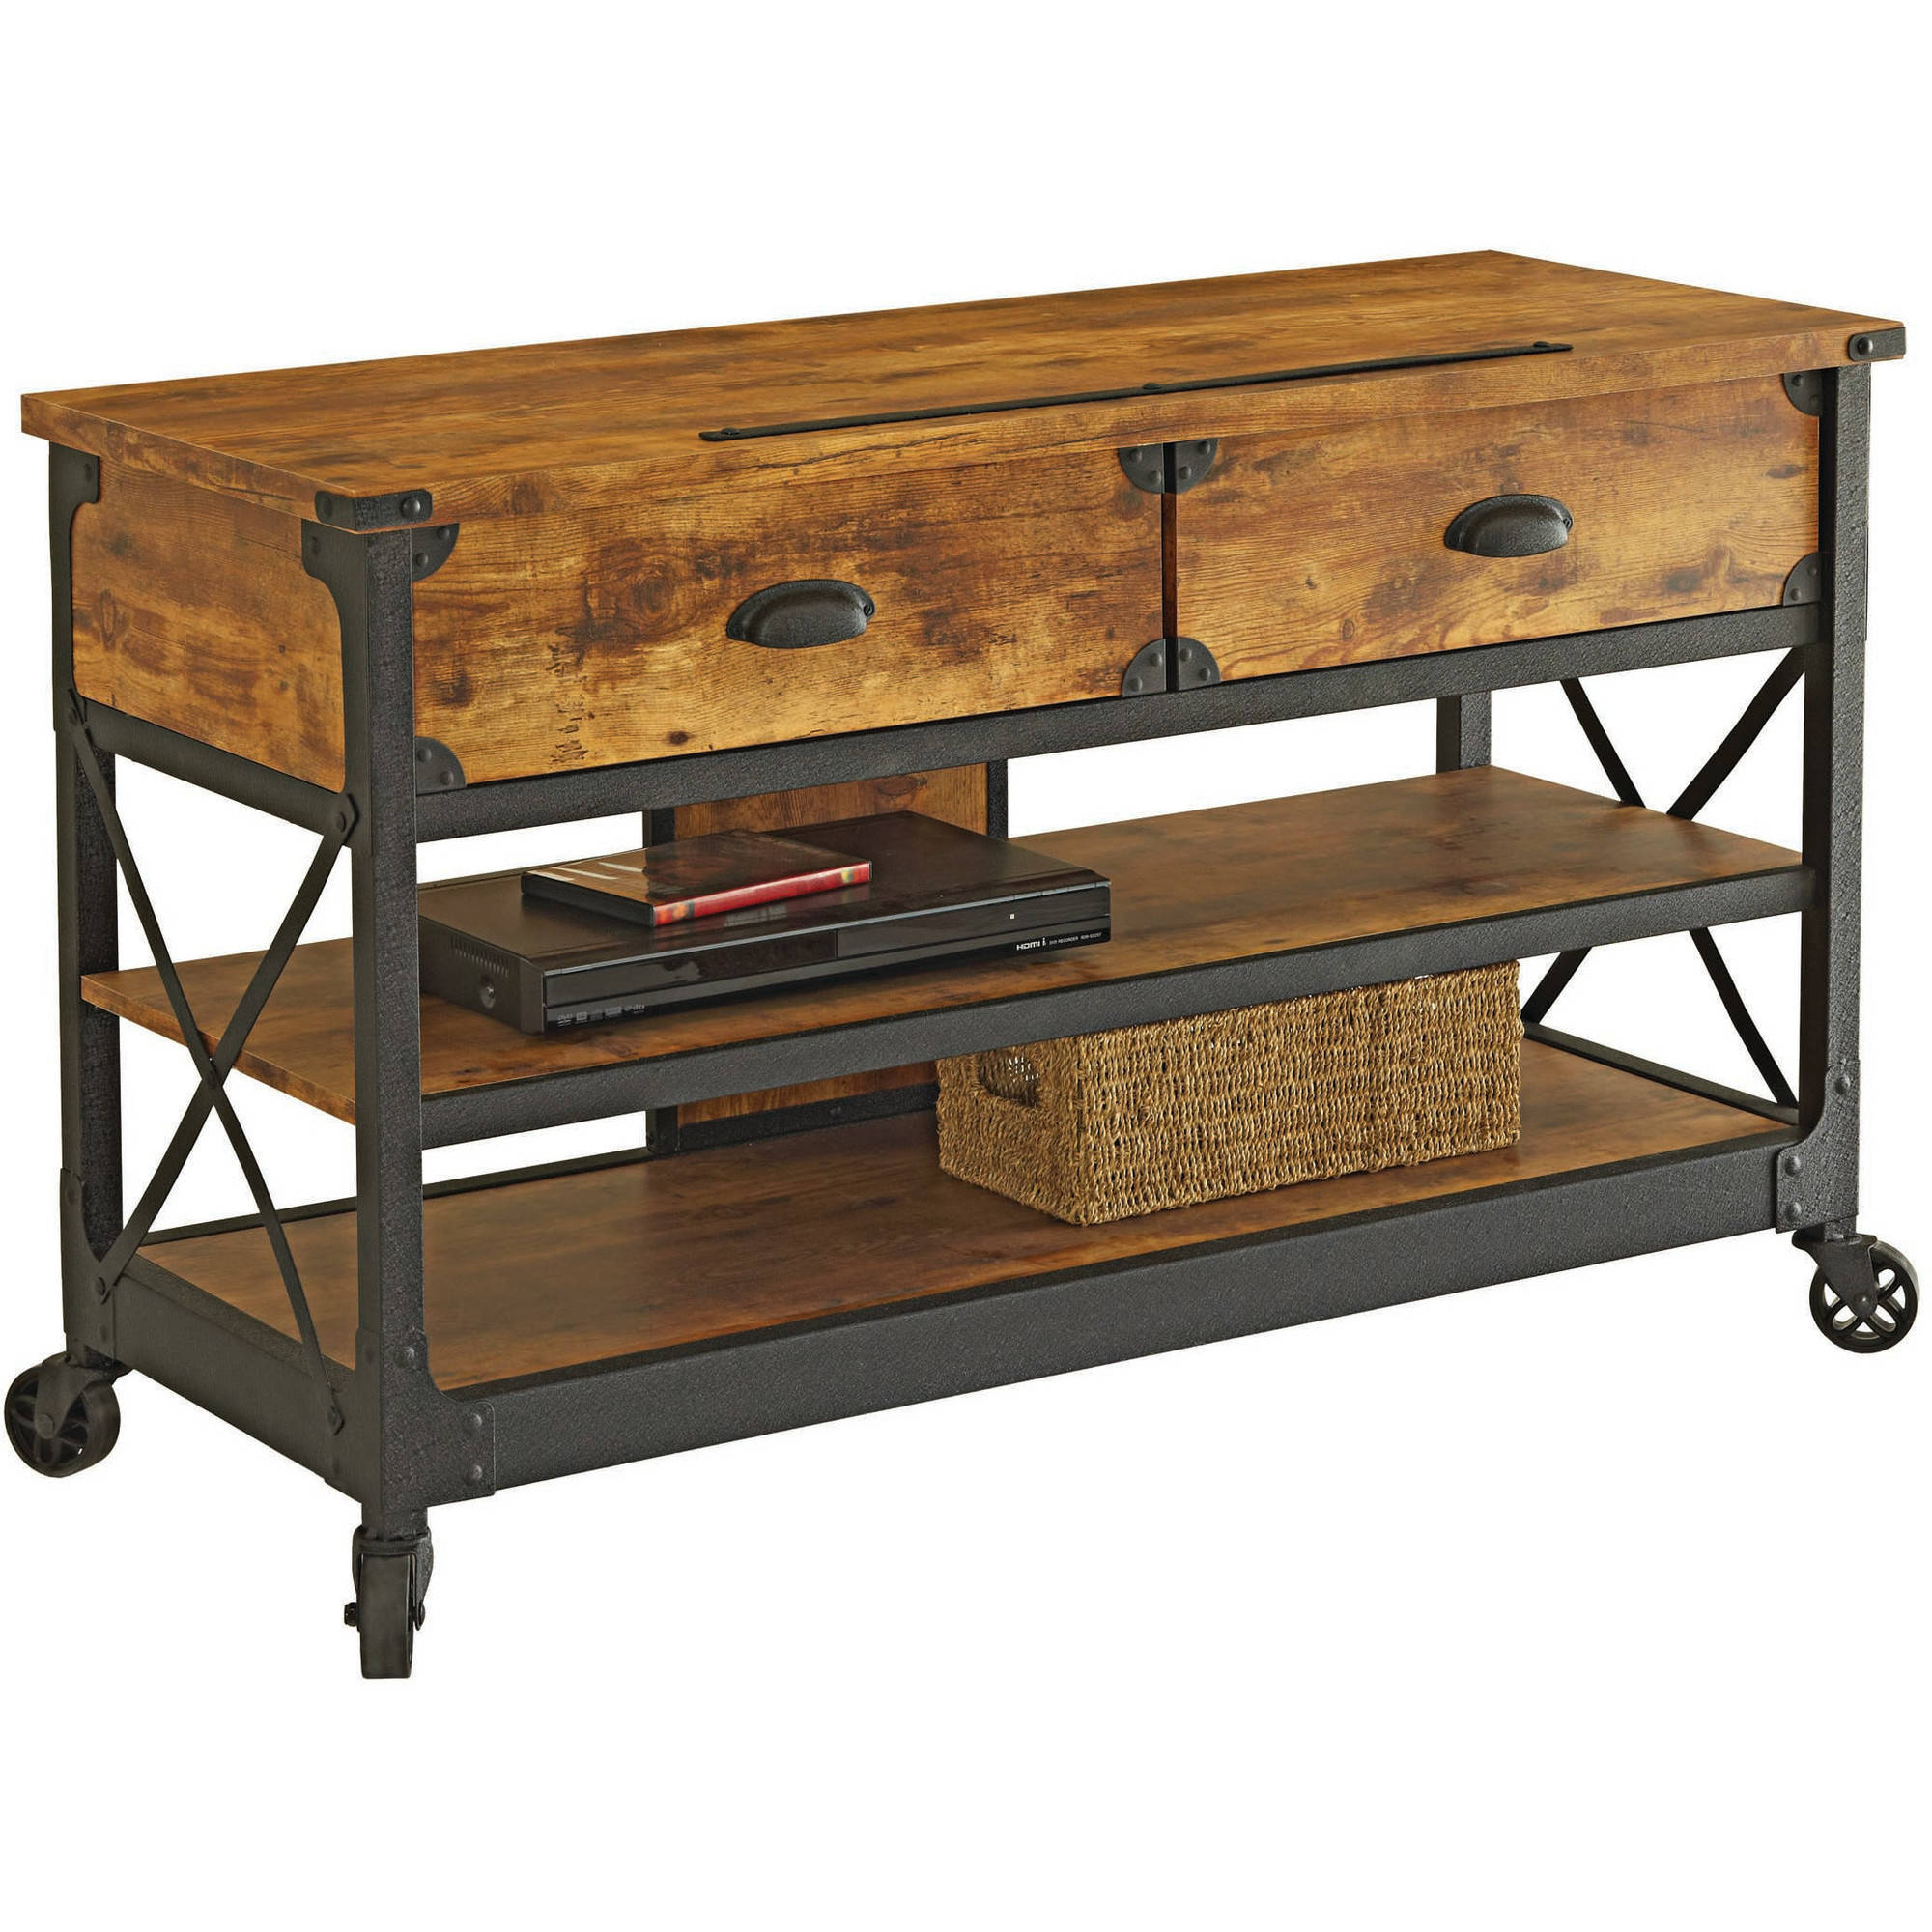 Better Homes And Gardens Rustic Country Furniture Collection   Walmart.com